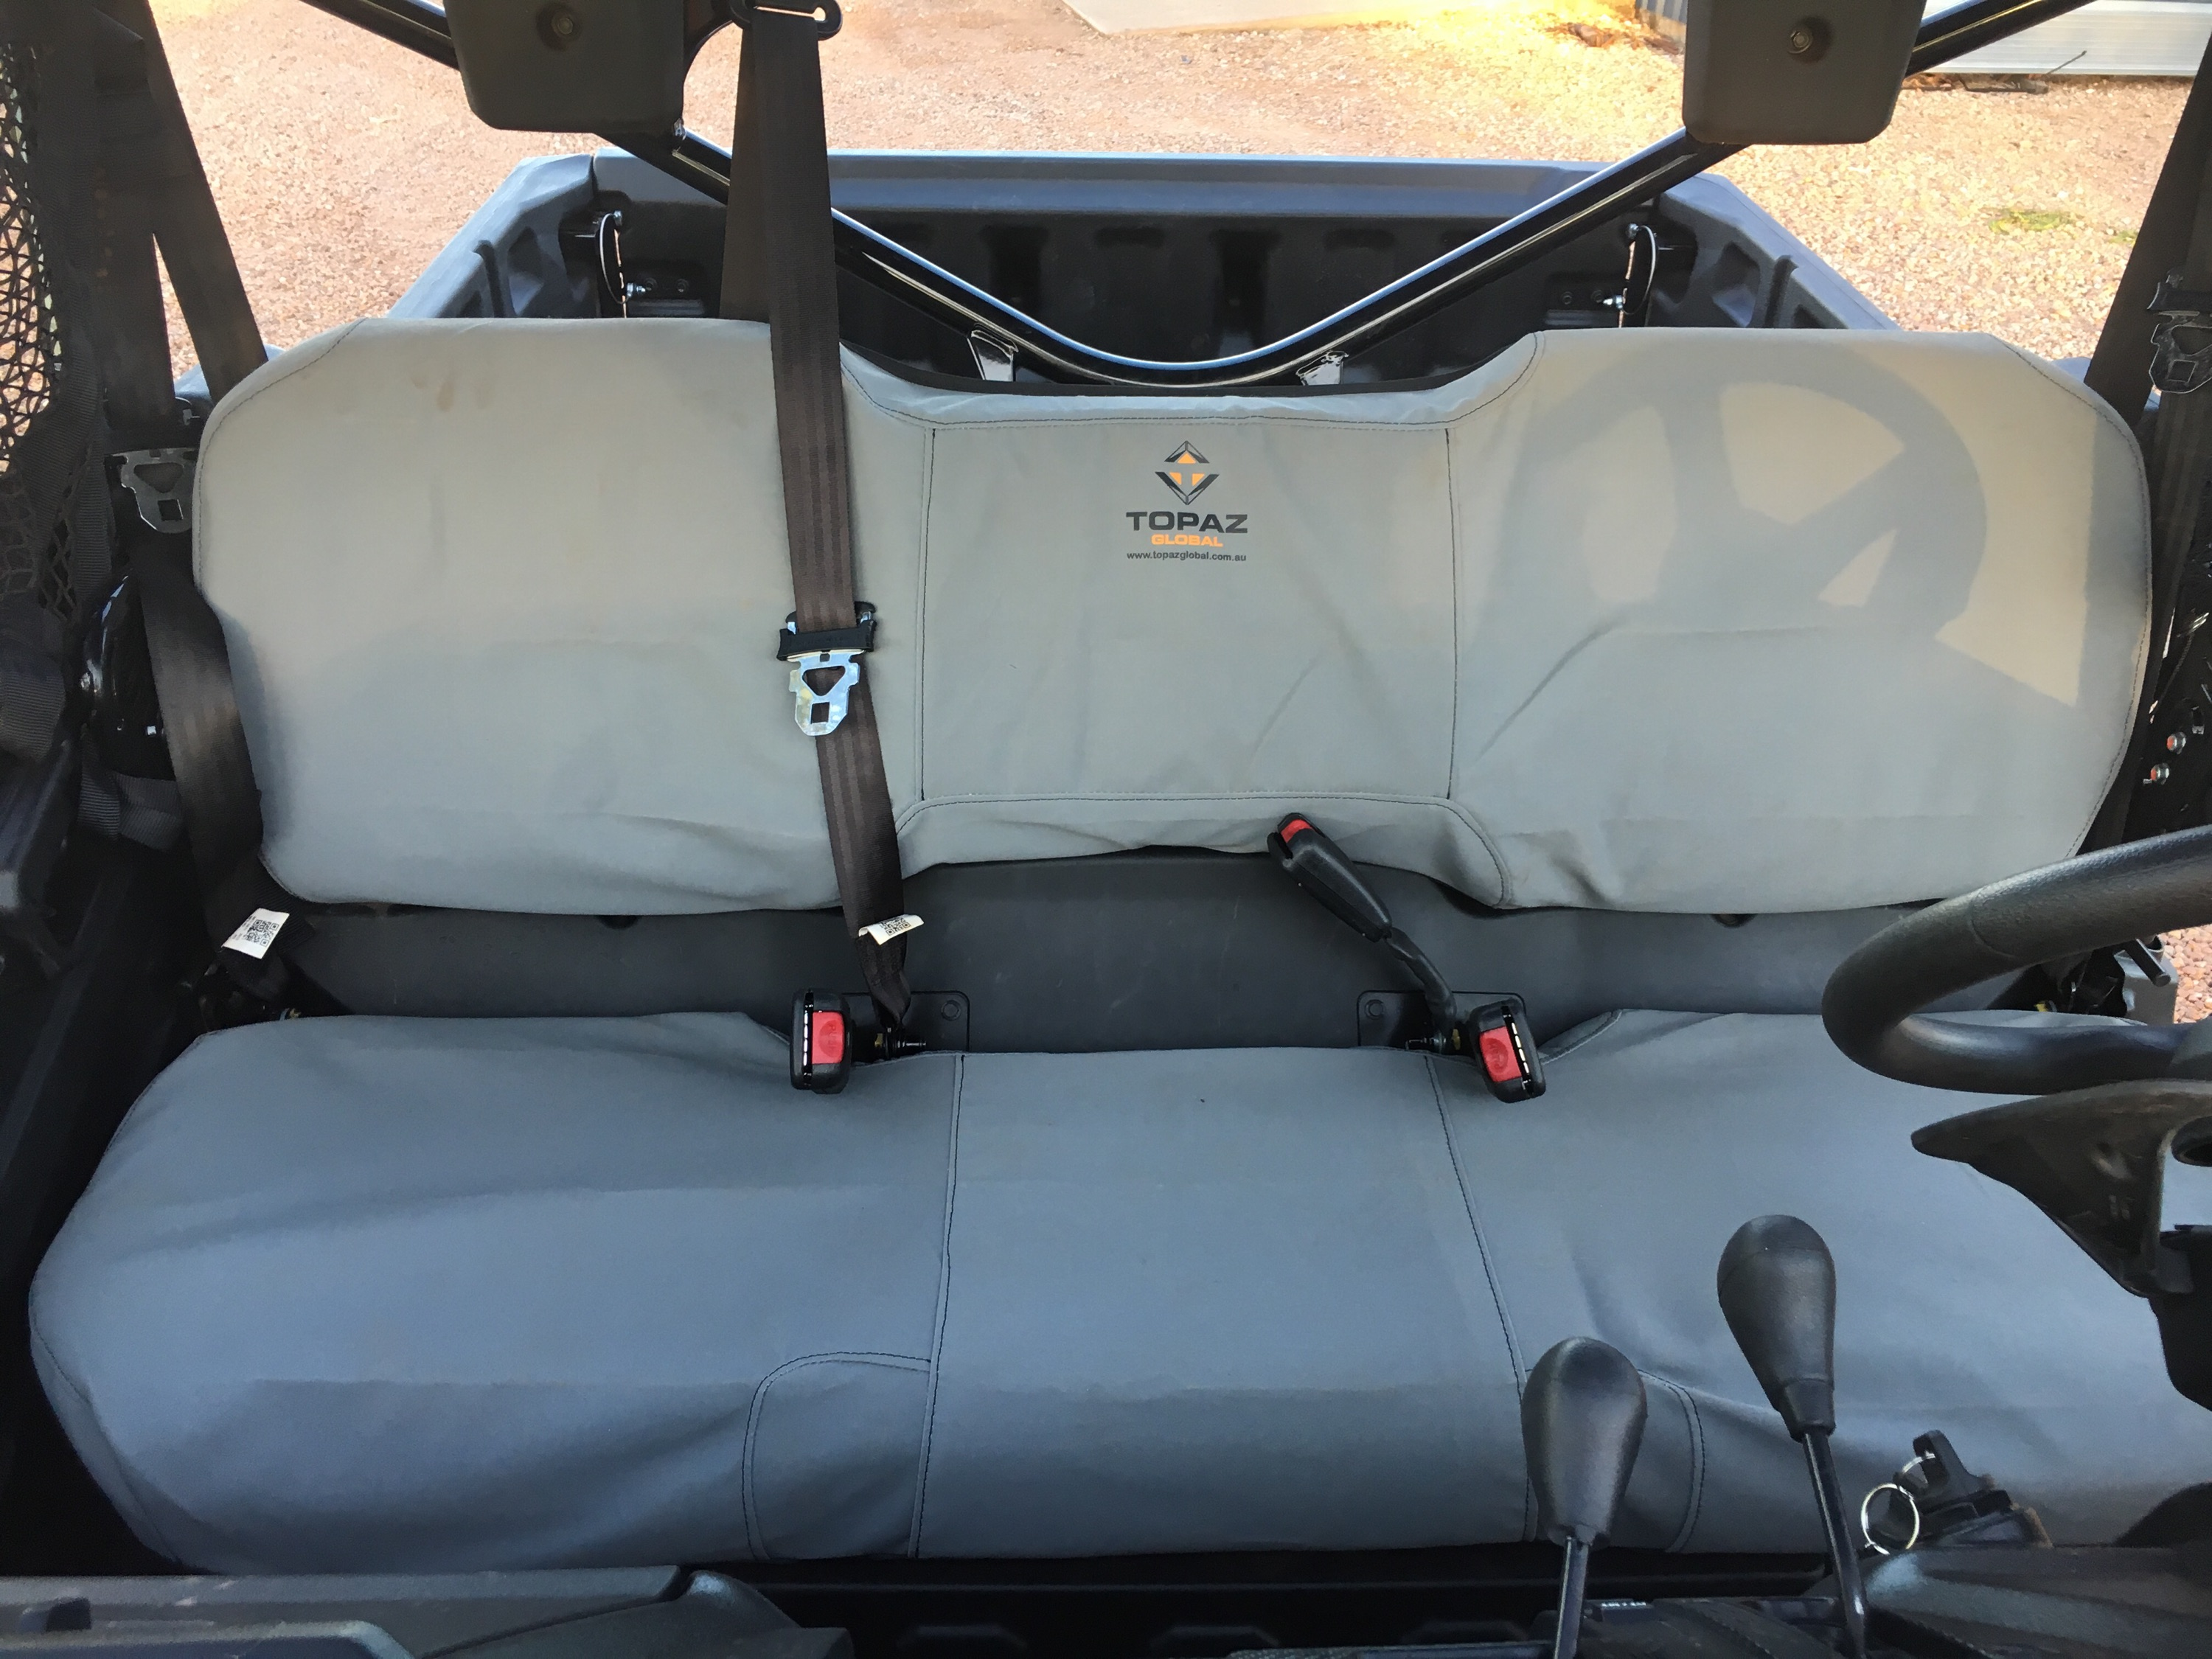 Tremendous Canvas Seat Covers Honda Pioneer 700 4 All Seats Alphanode Cool Chair Designs And Ideas Alphanodeonline